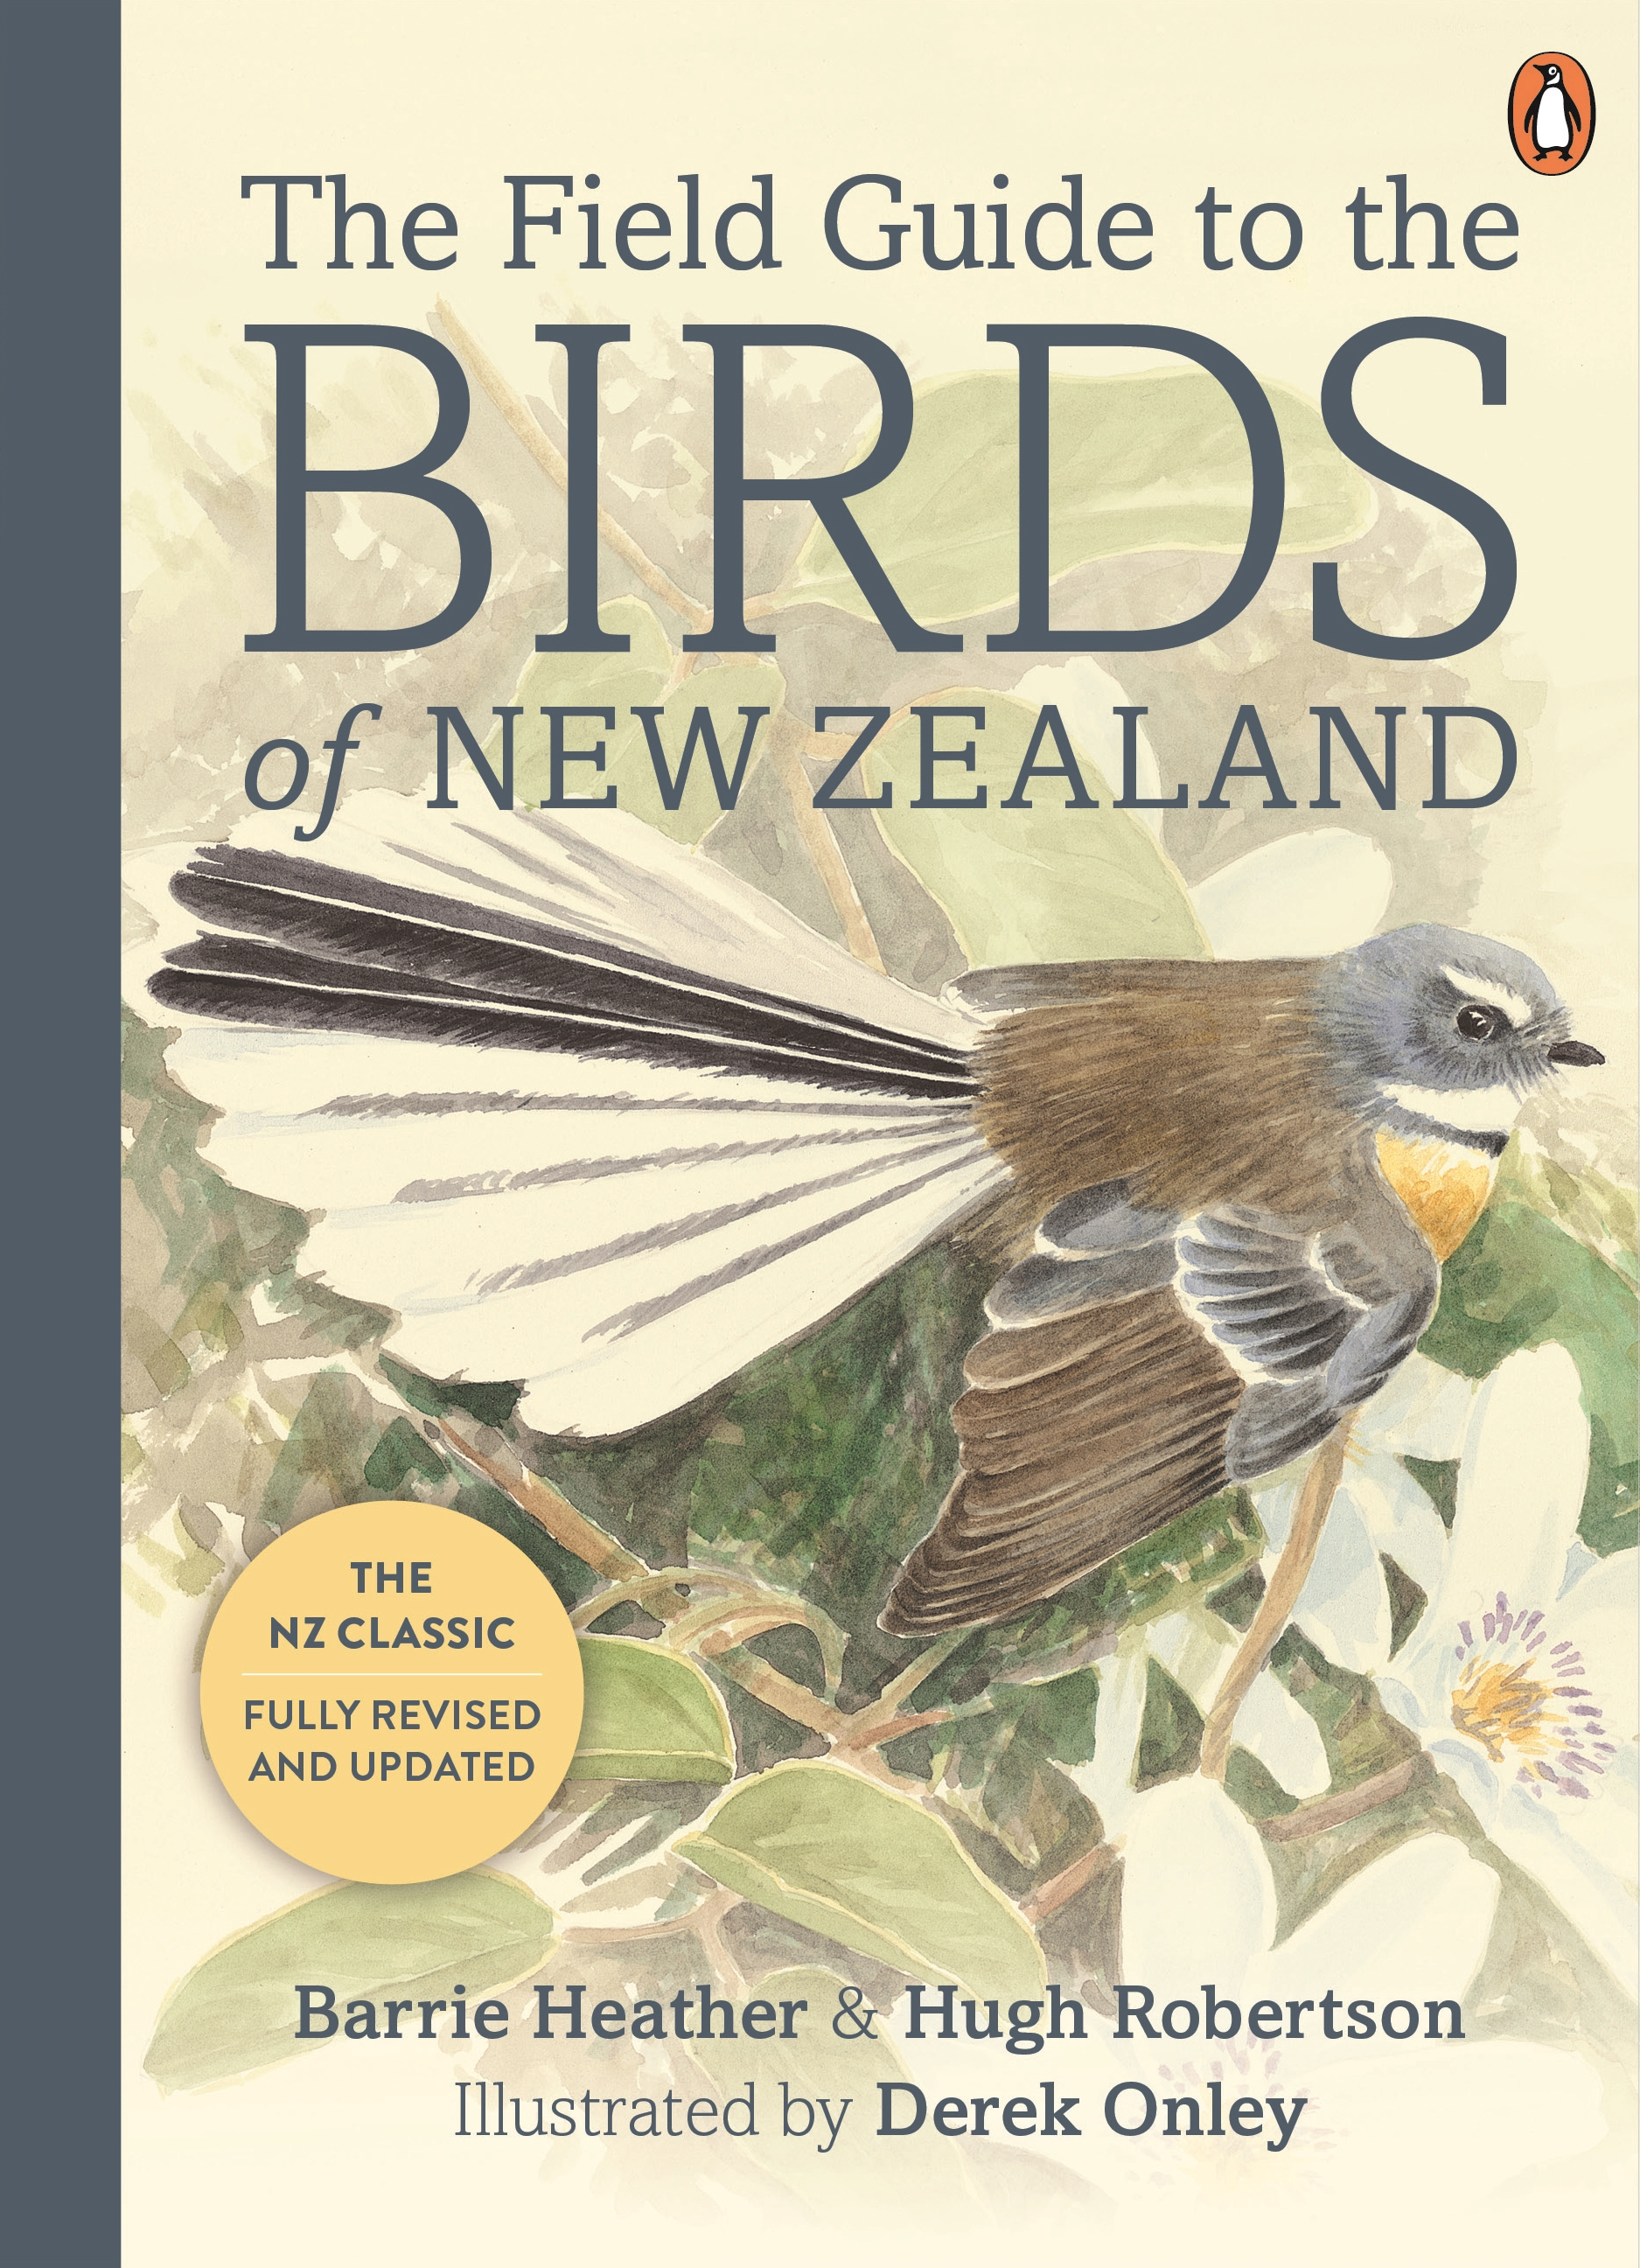 Book Covering Nz ~ The field guide to birds of new zealand edition